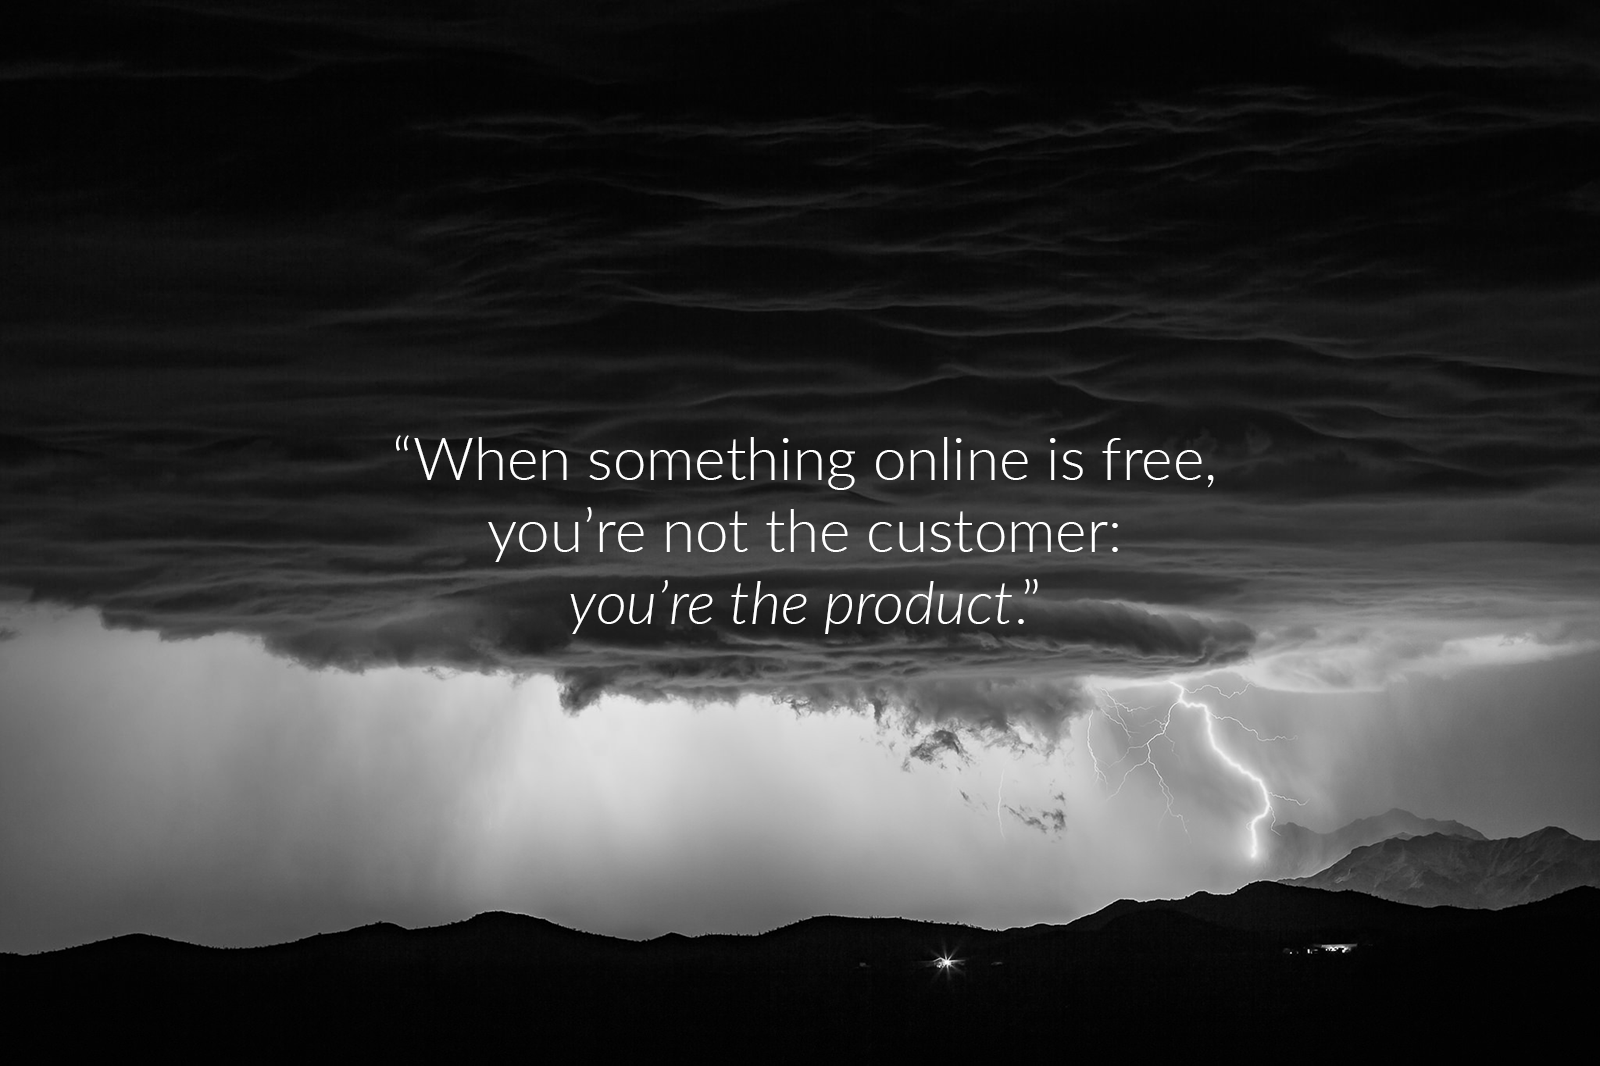 when something online is free, you're not the customer, you're the product wallpaper